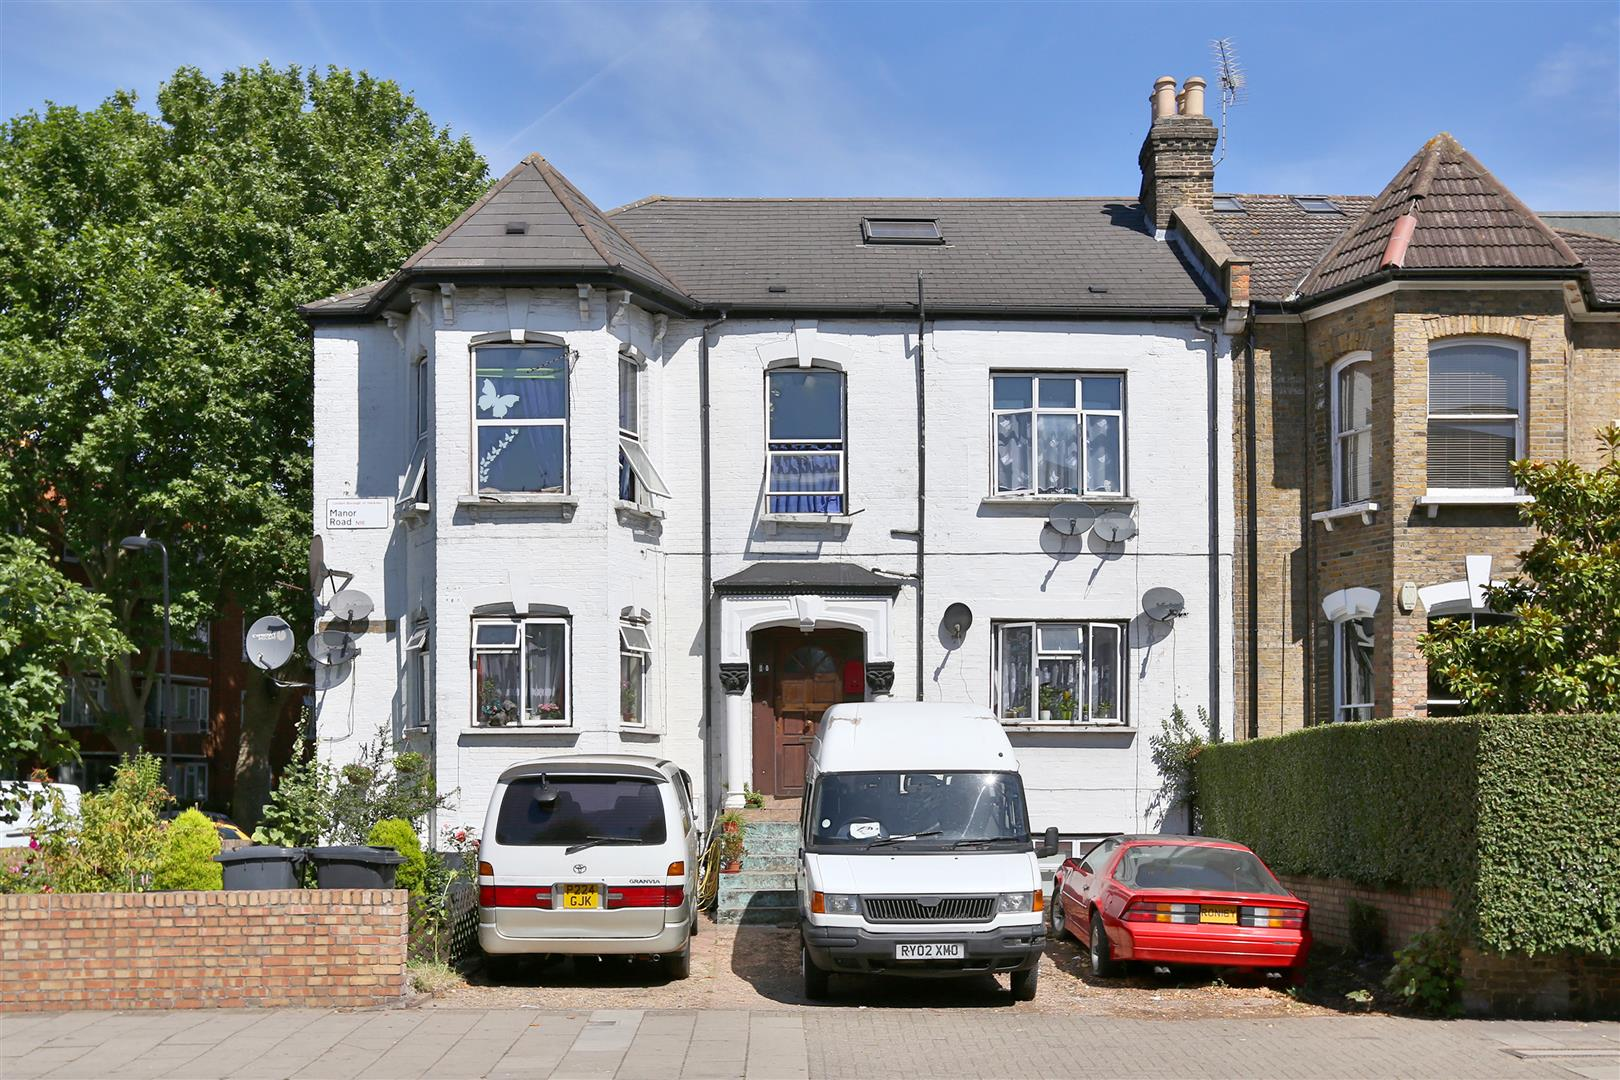 7 Bedrooms House for sale in Manor Road, London